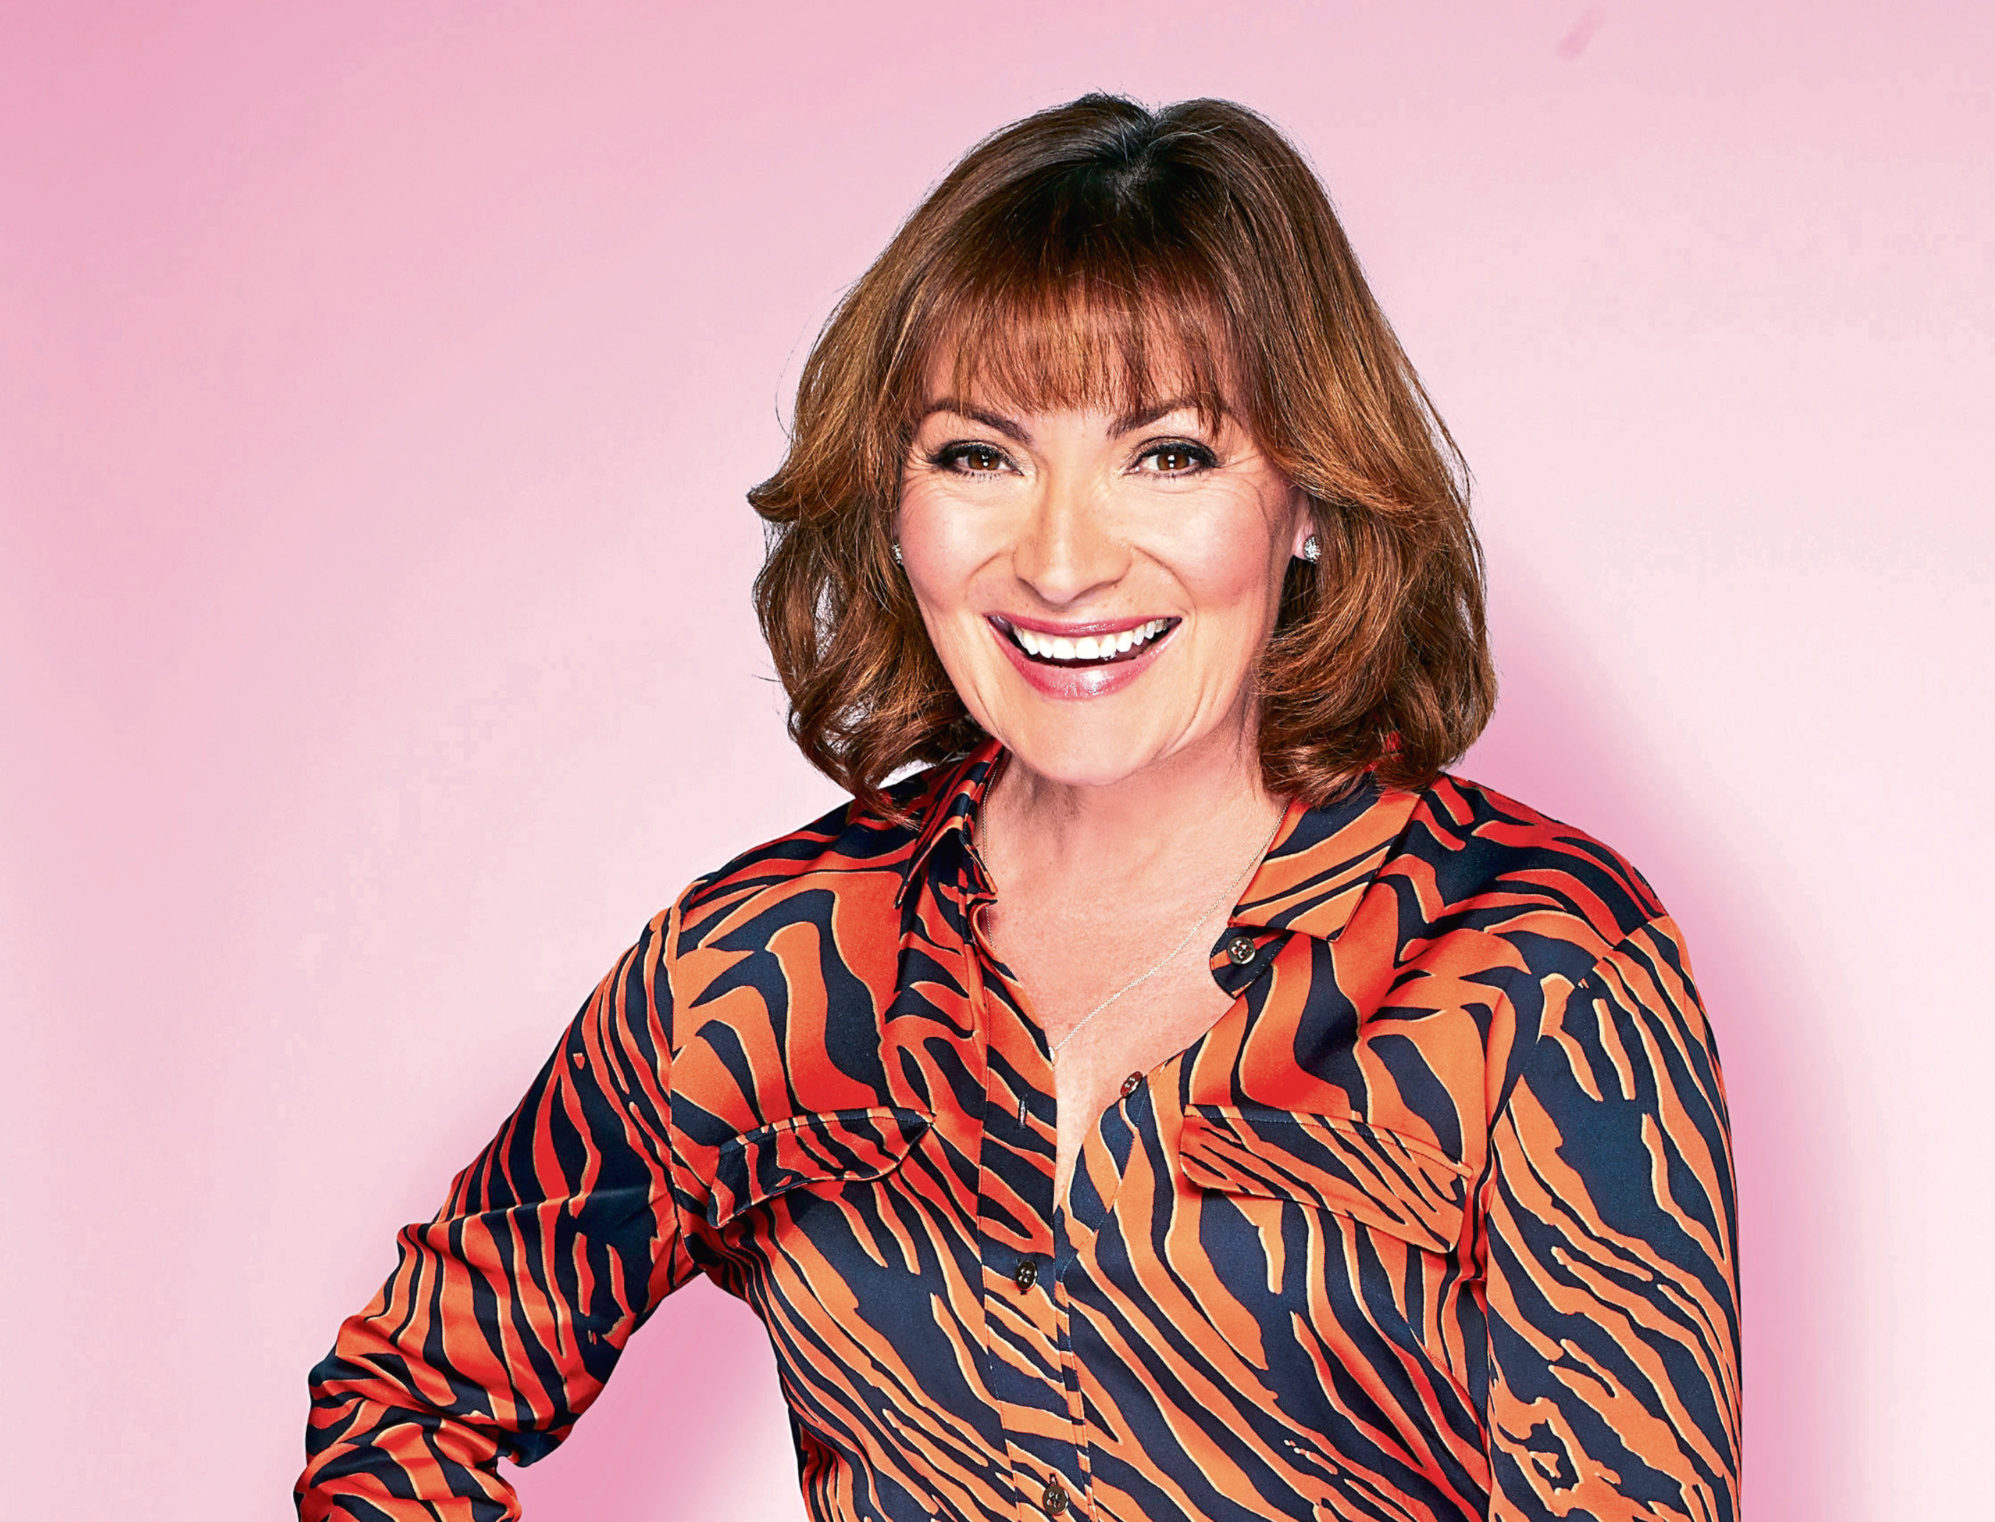 Scots presenter Lorraine Kelly has made the Queen's Honours List.